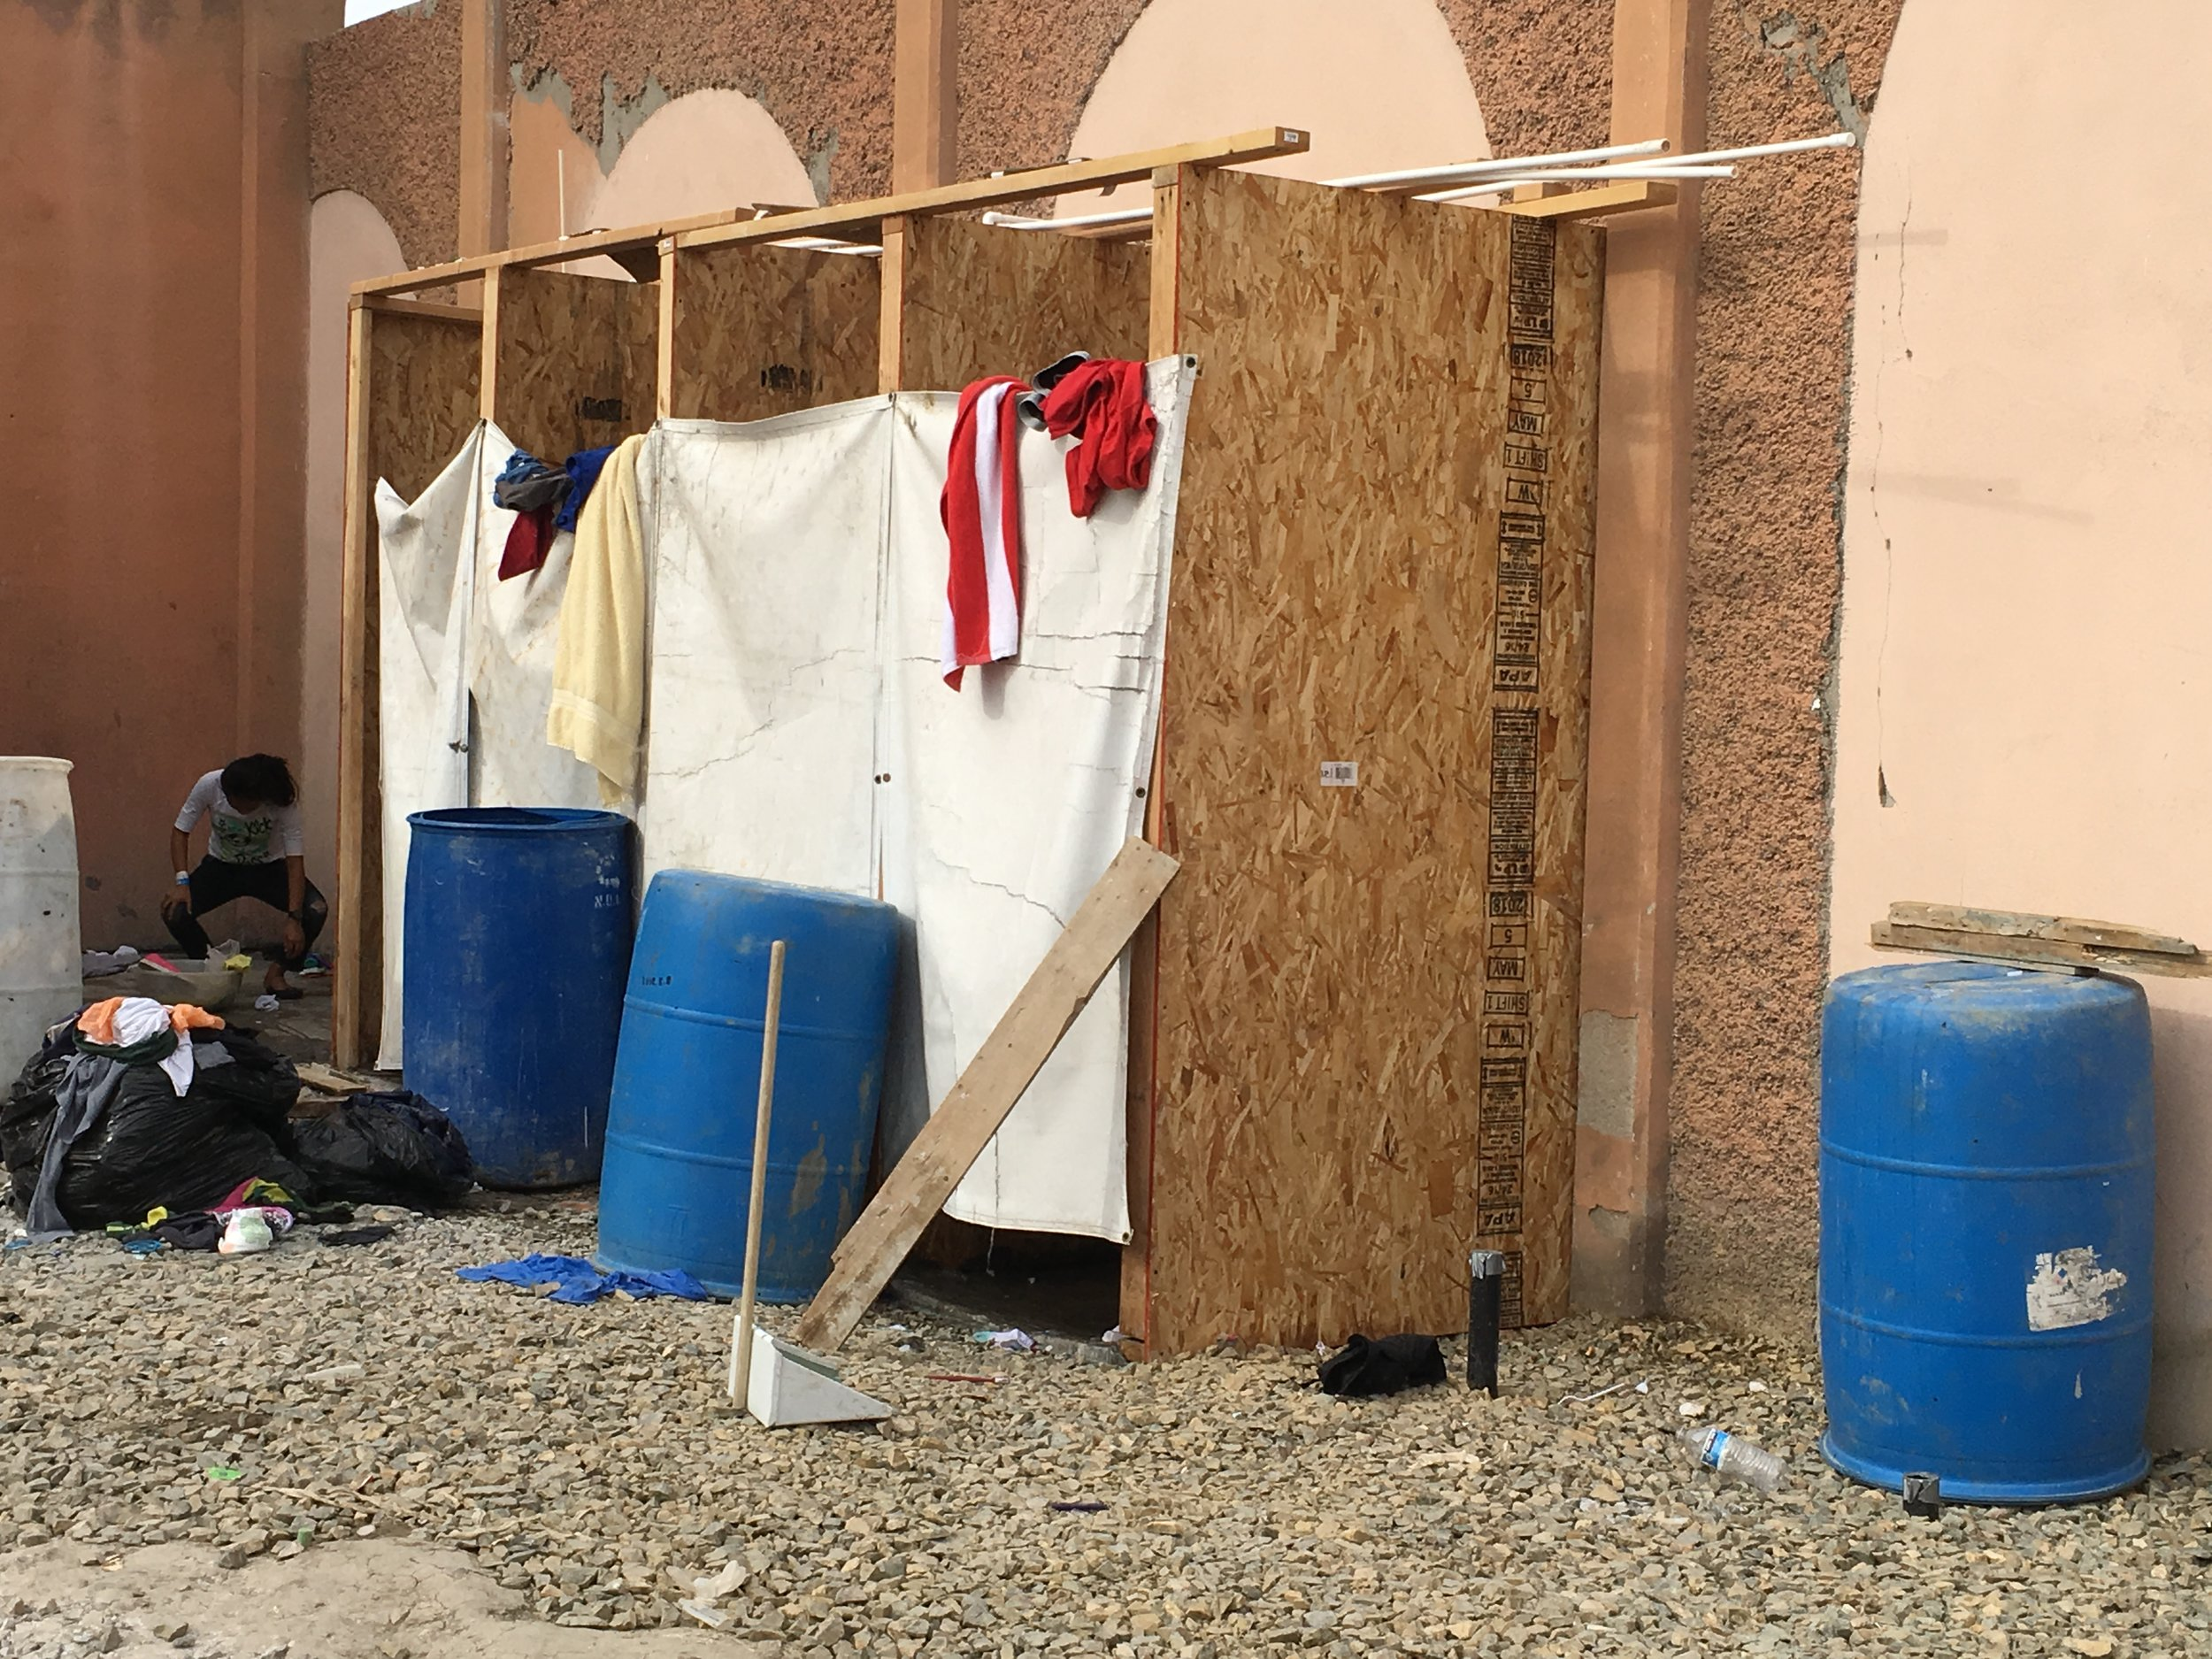 A few of the showers that we helped fund through your donations.